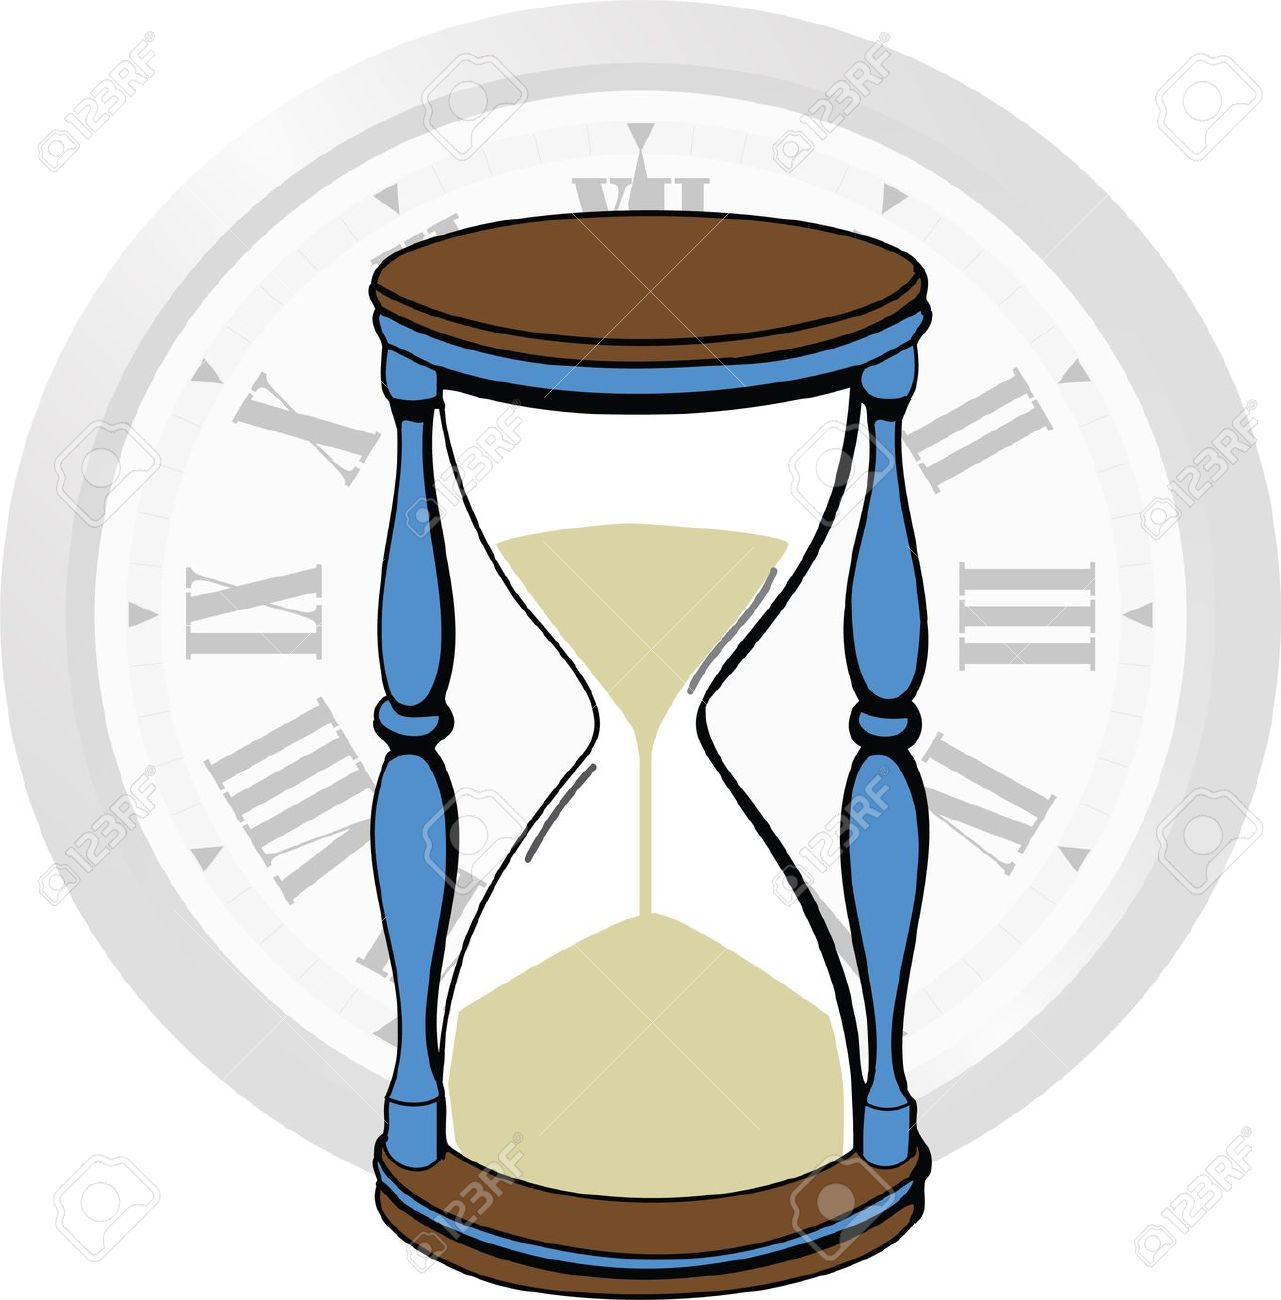 Time passing clipart.